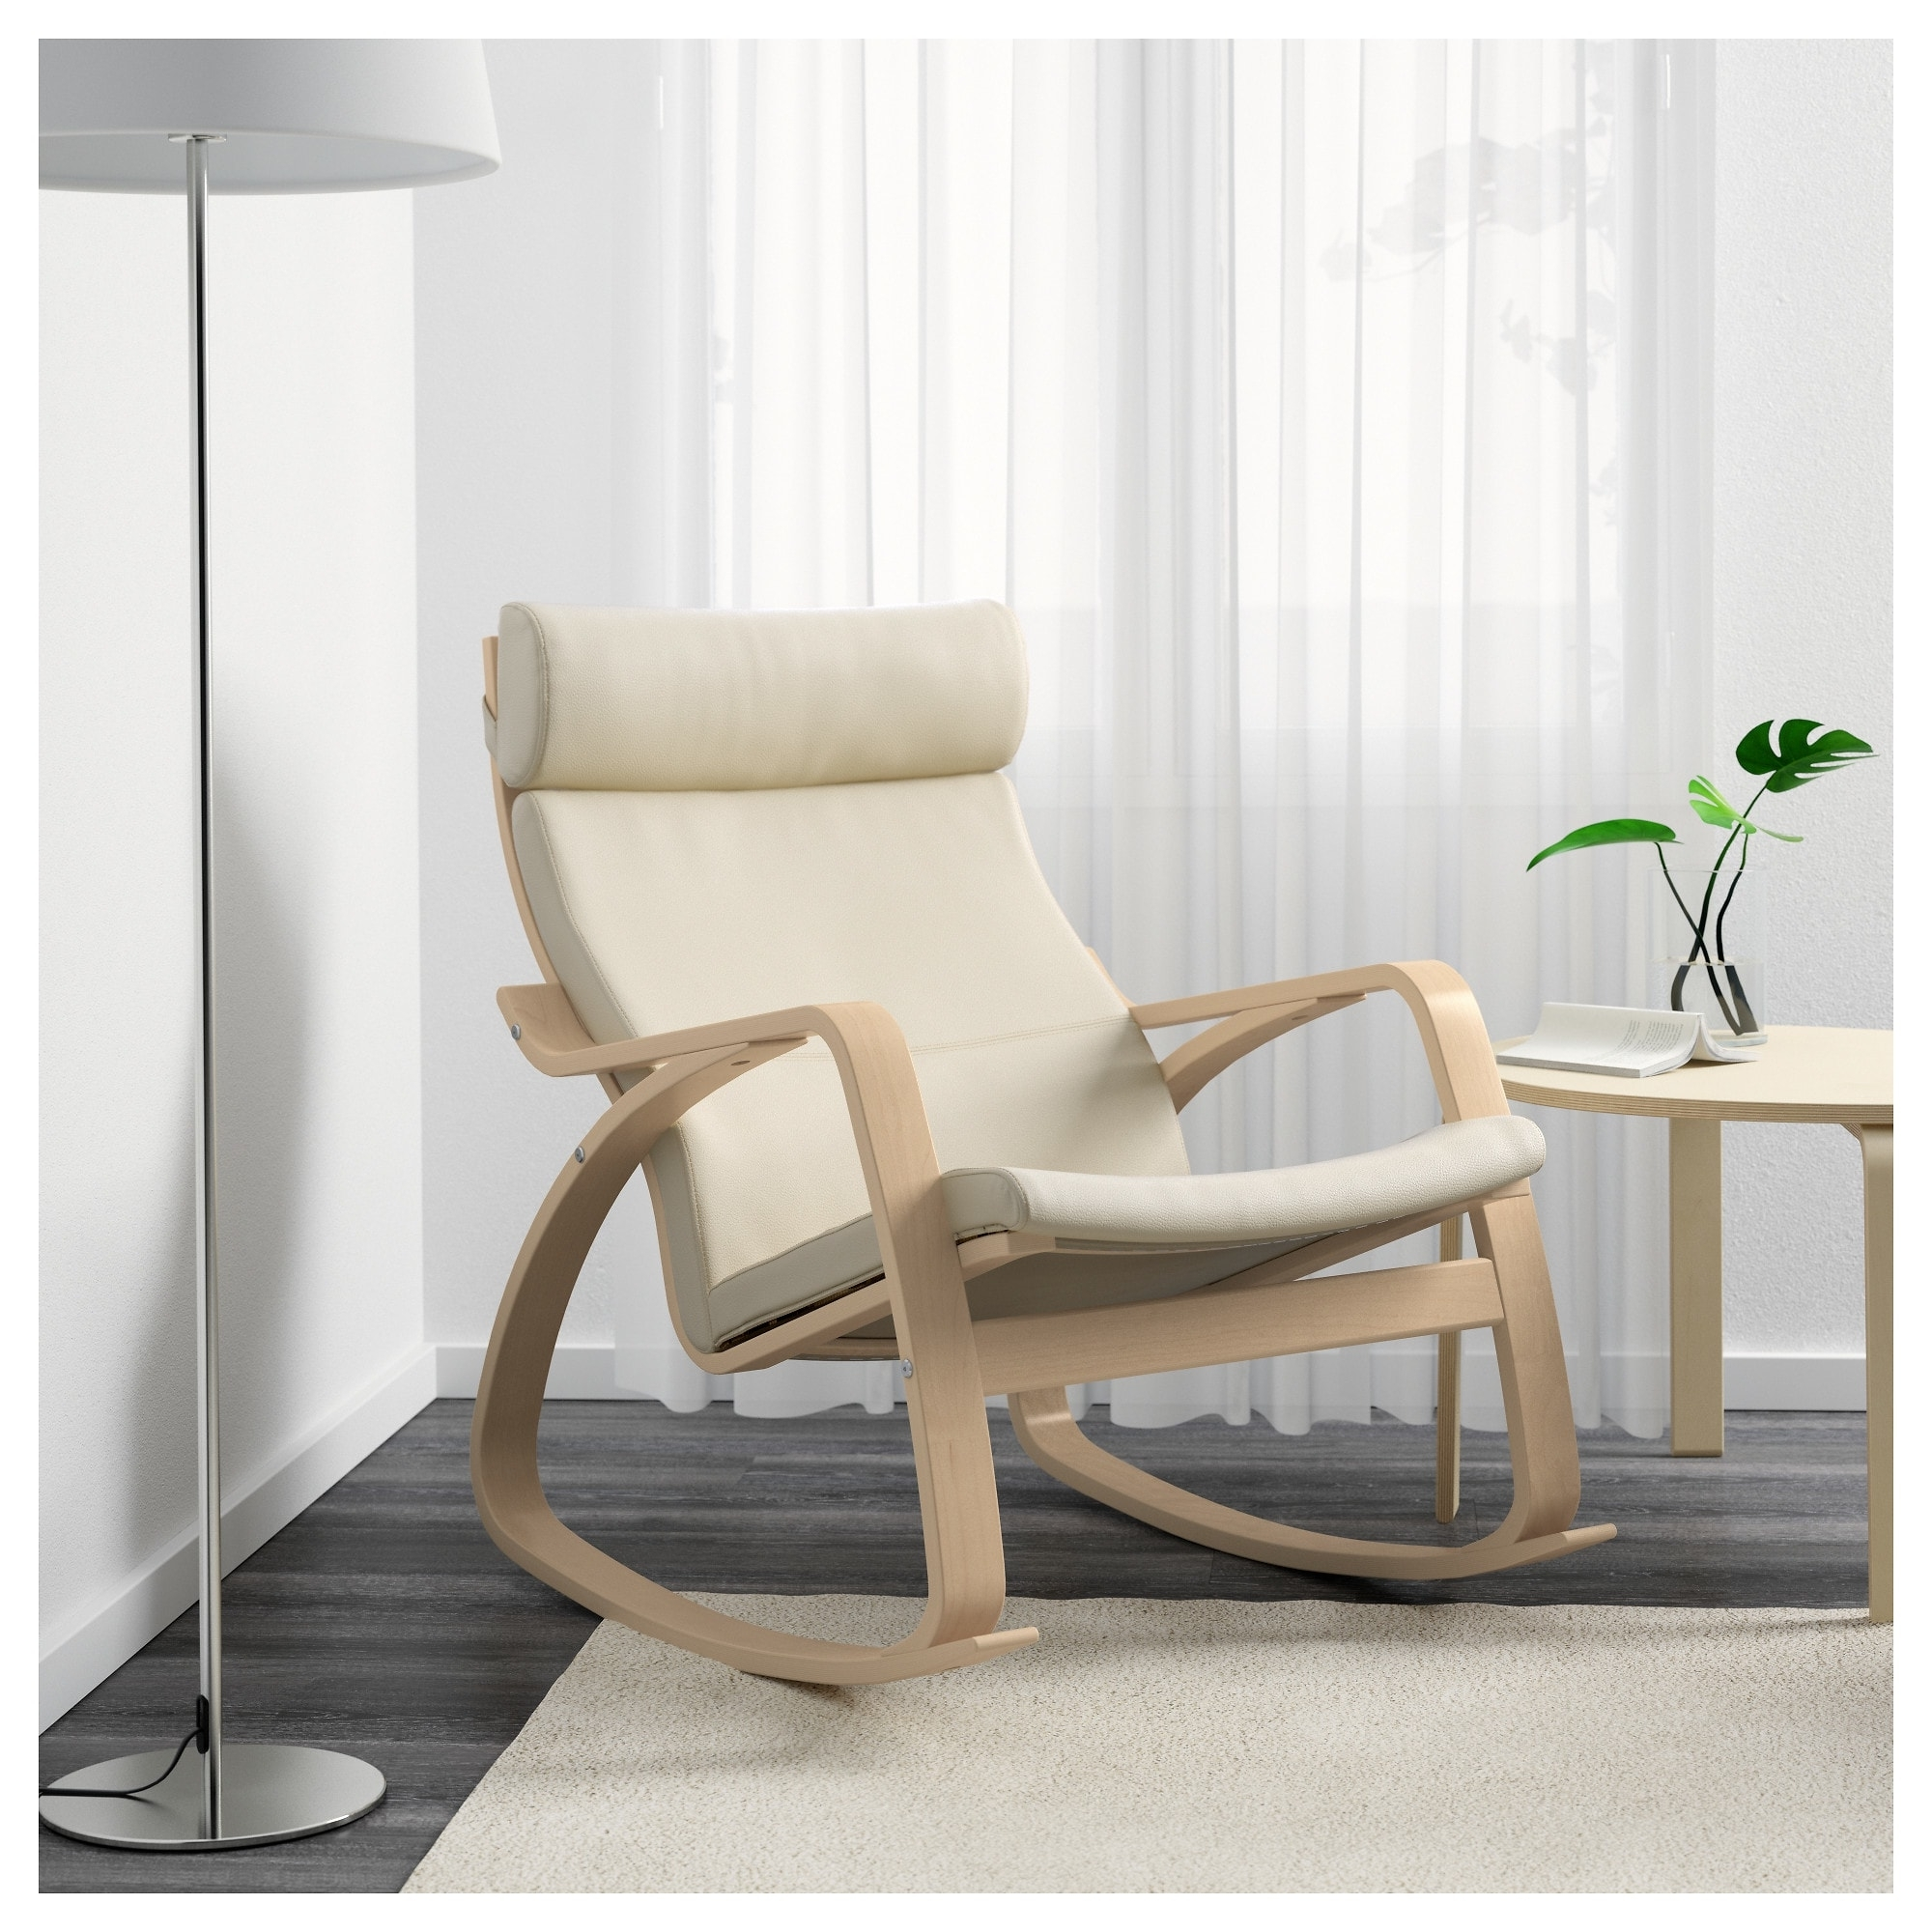 Rocking Chairs For Widely Used Poäng Rocking Chair Birch Veneer/glose Eggshell – Ikea (View 12 of 15)